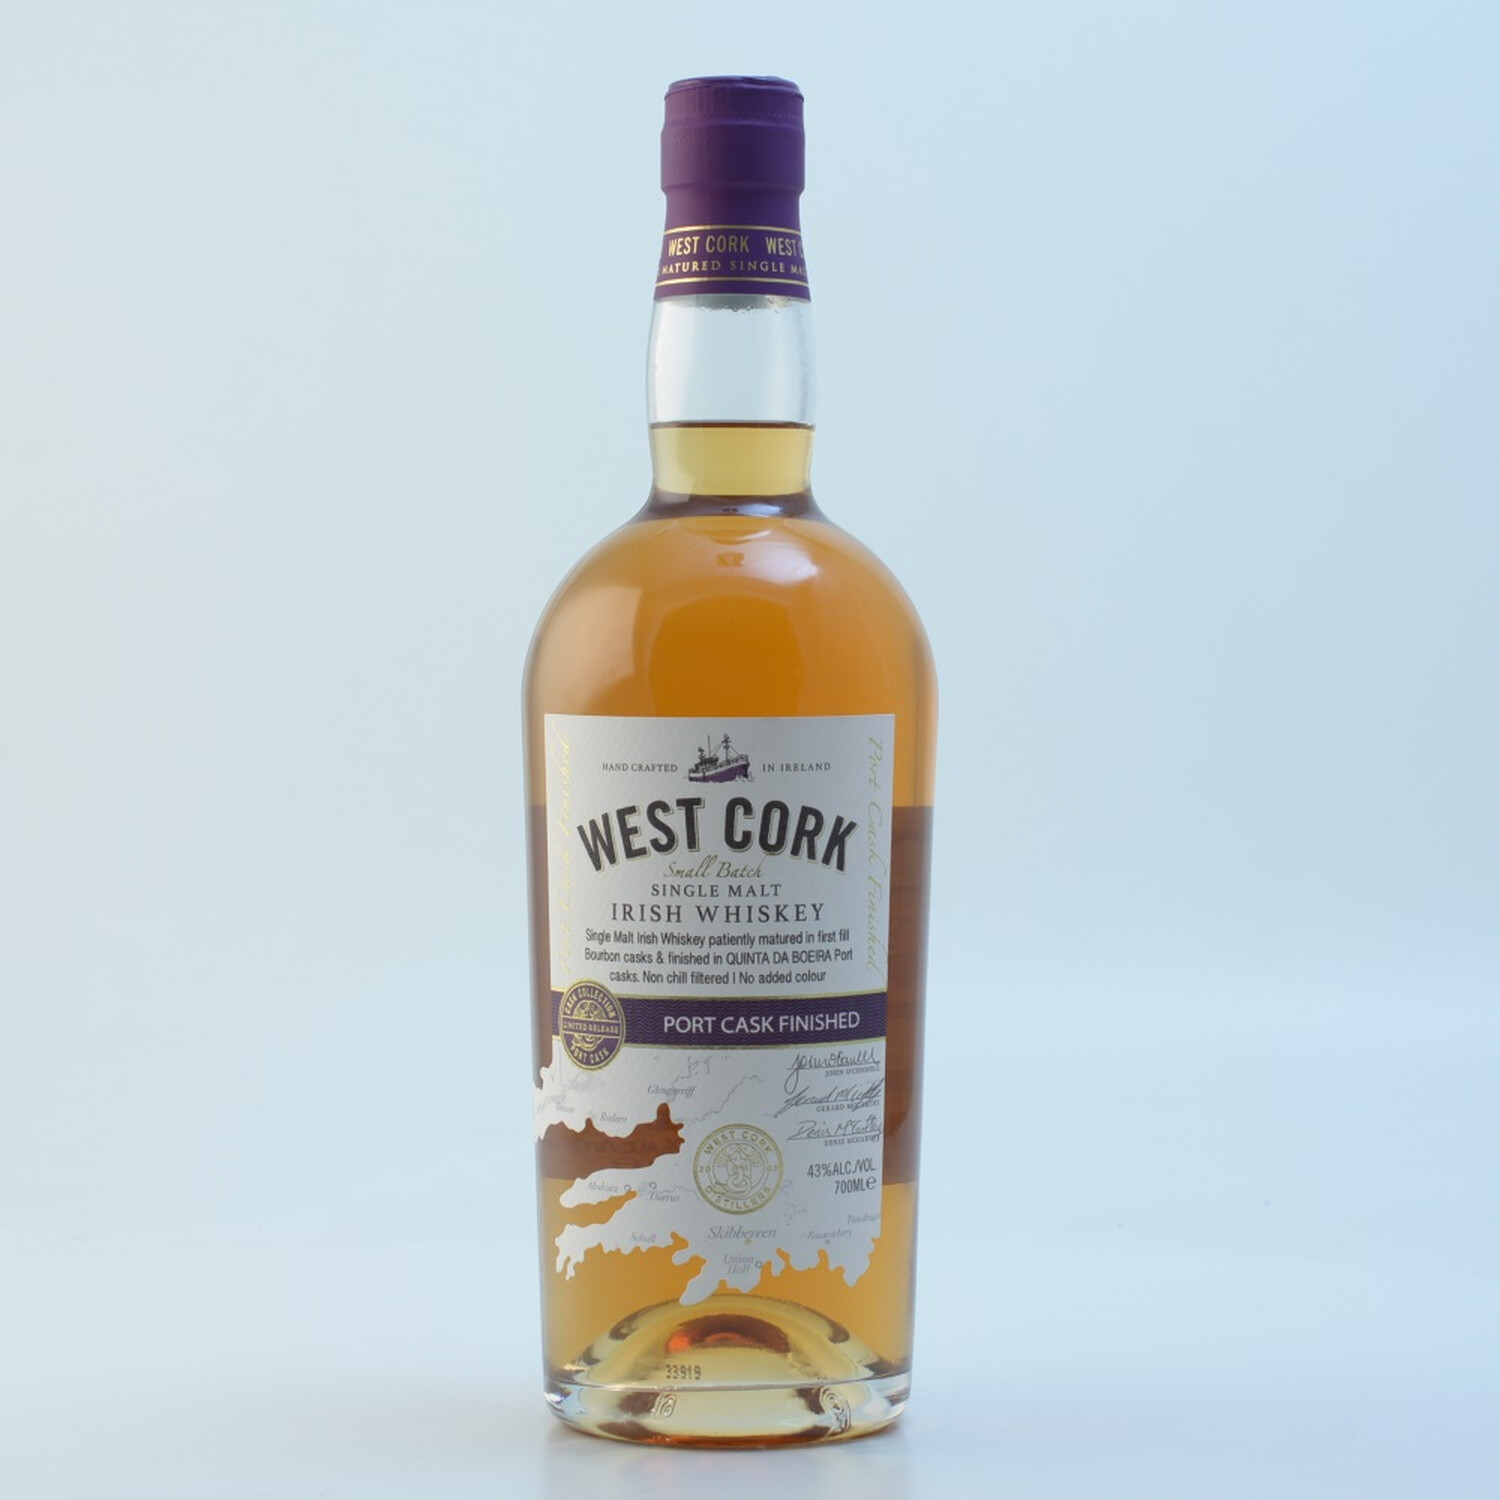 West Cork 12 Jahre Port Cask Irish Whiskey 43% 0,7l (49,86 € pro 1 l)